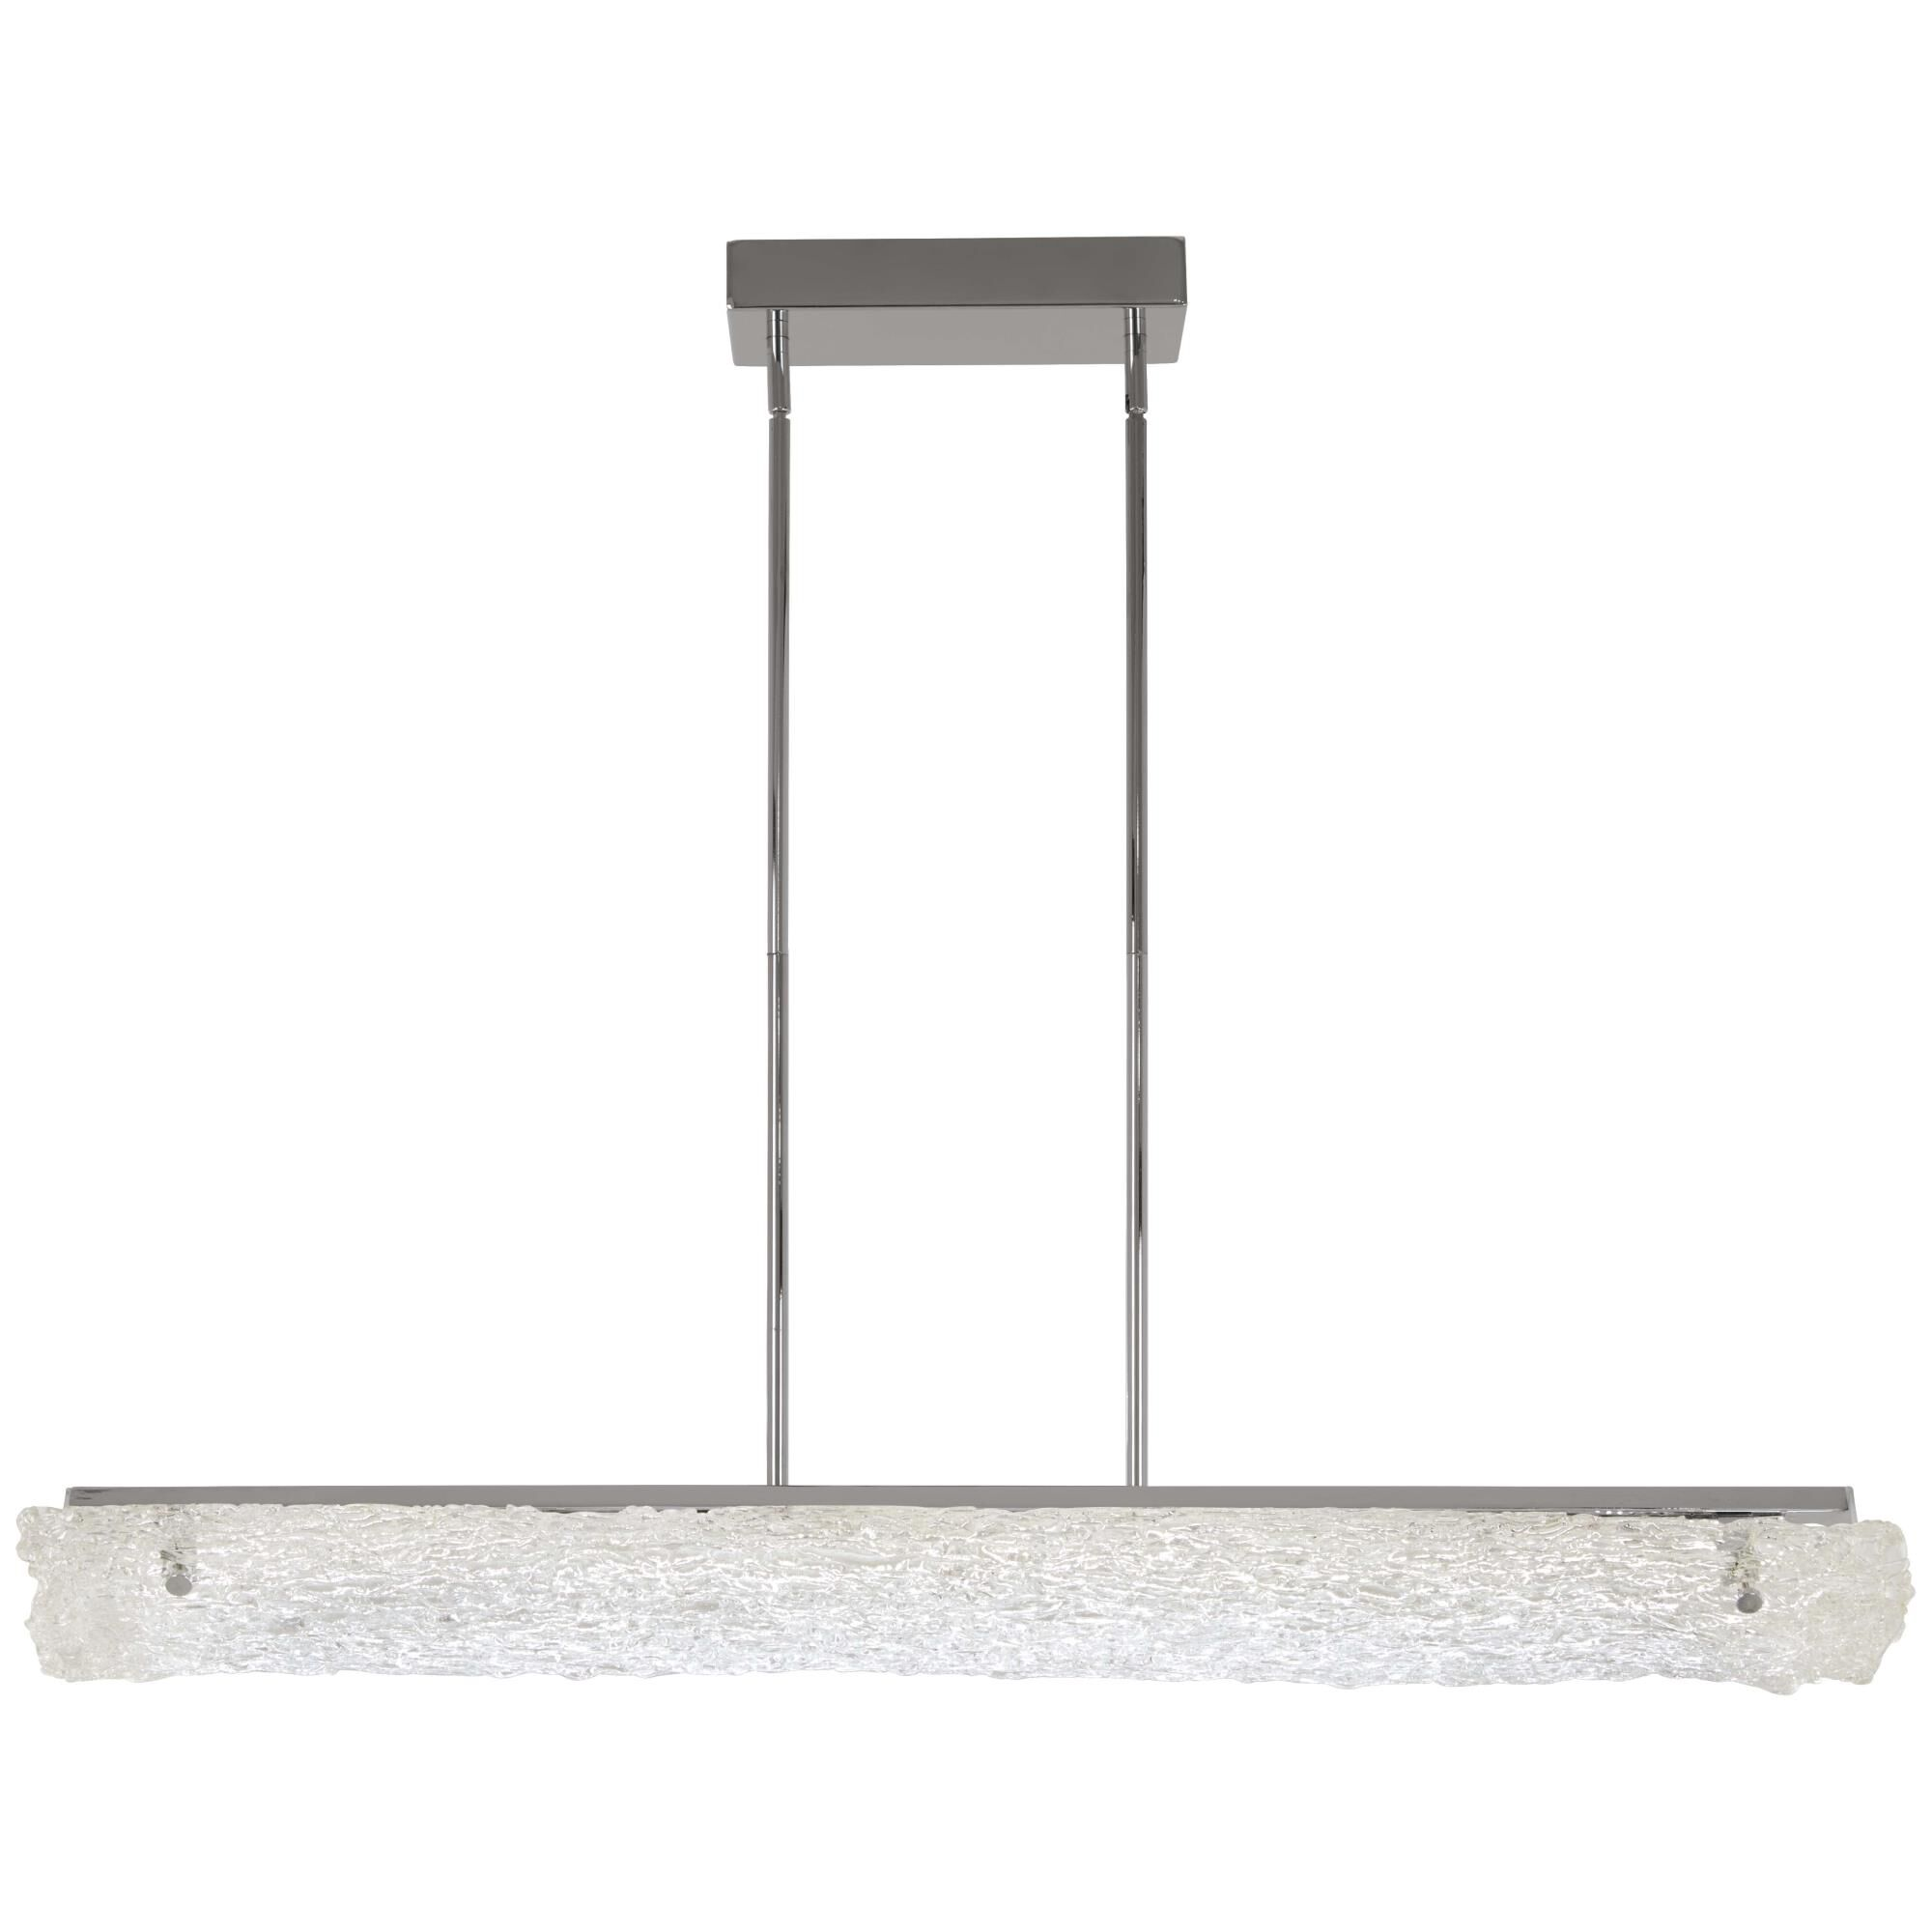 Kovacs Forest Ice 40 Inch 1 Light Led Linear Suspension Light Forest Ice - P1386-077-l - Modern Contemporary